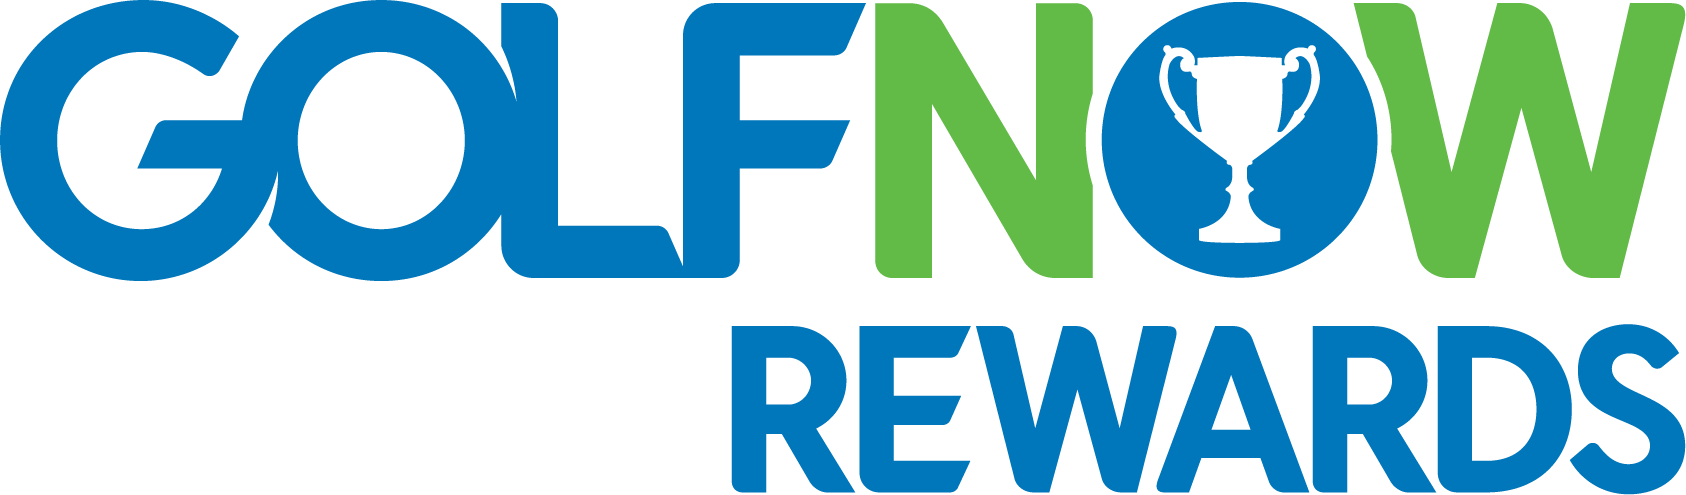 GolfNow Rewards